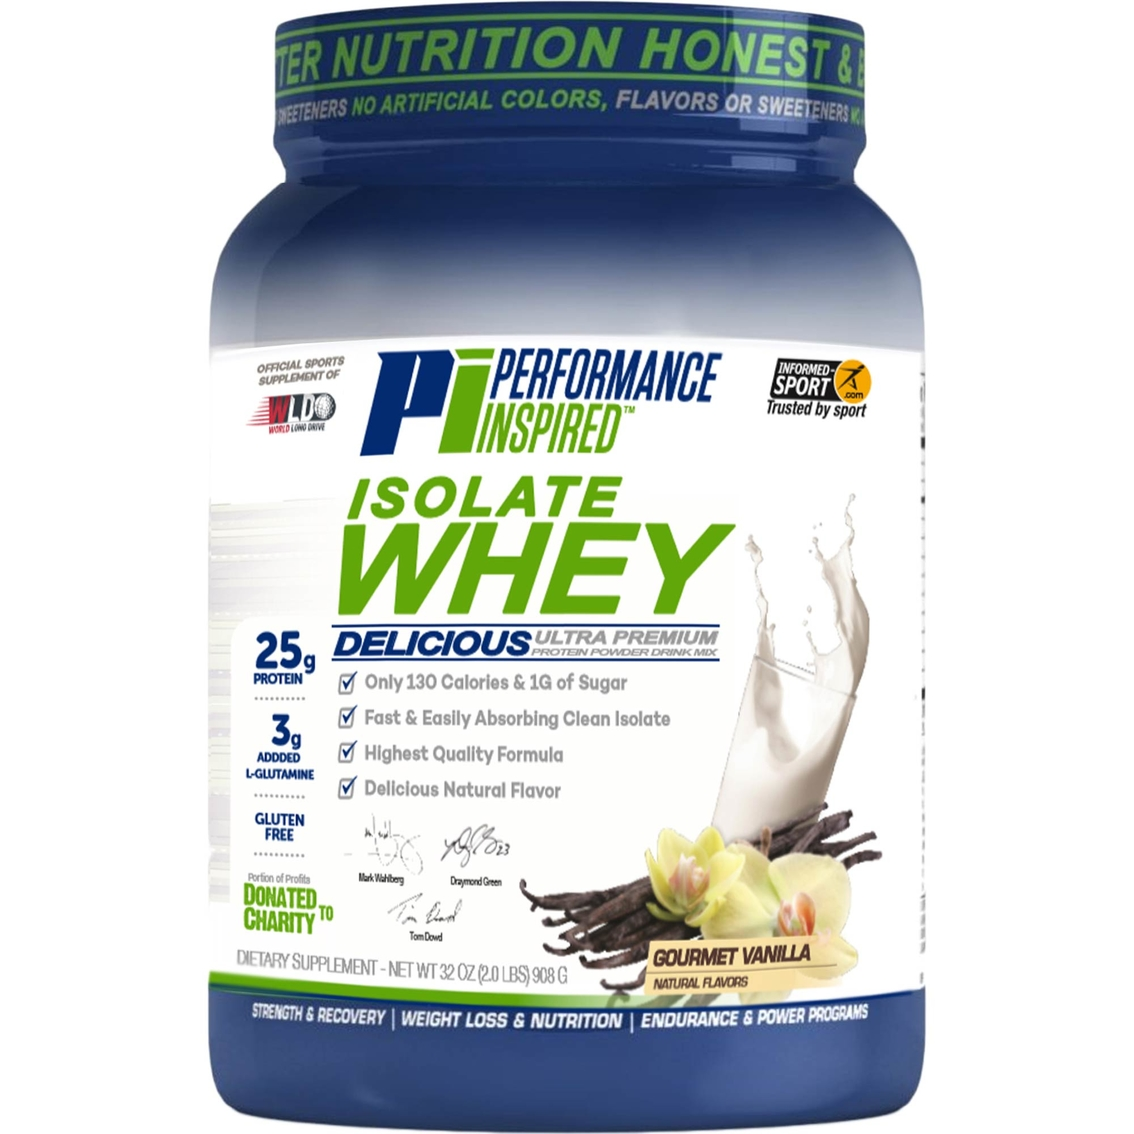 Performance Inspired Isolate Whey Protein Powder Drink Mix